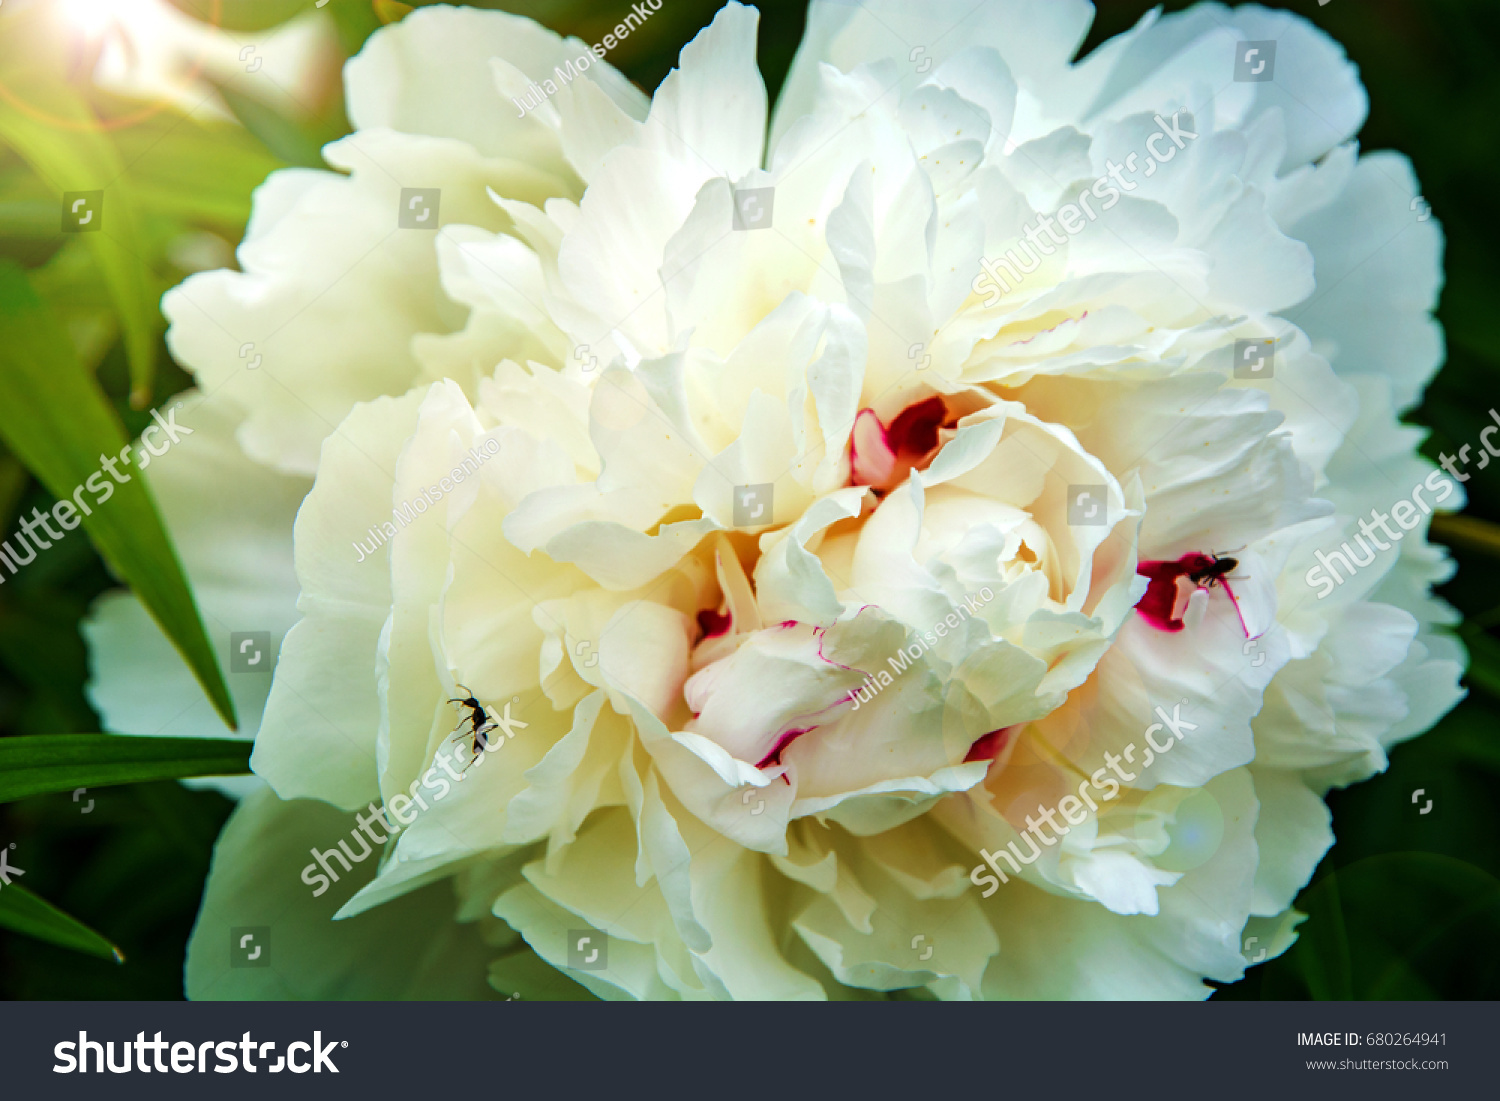 Large White Peonies Many Petals And Juicy Flower In The Bush Ez